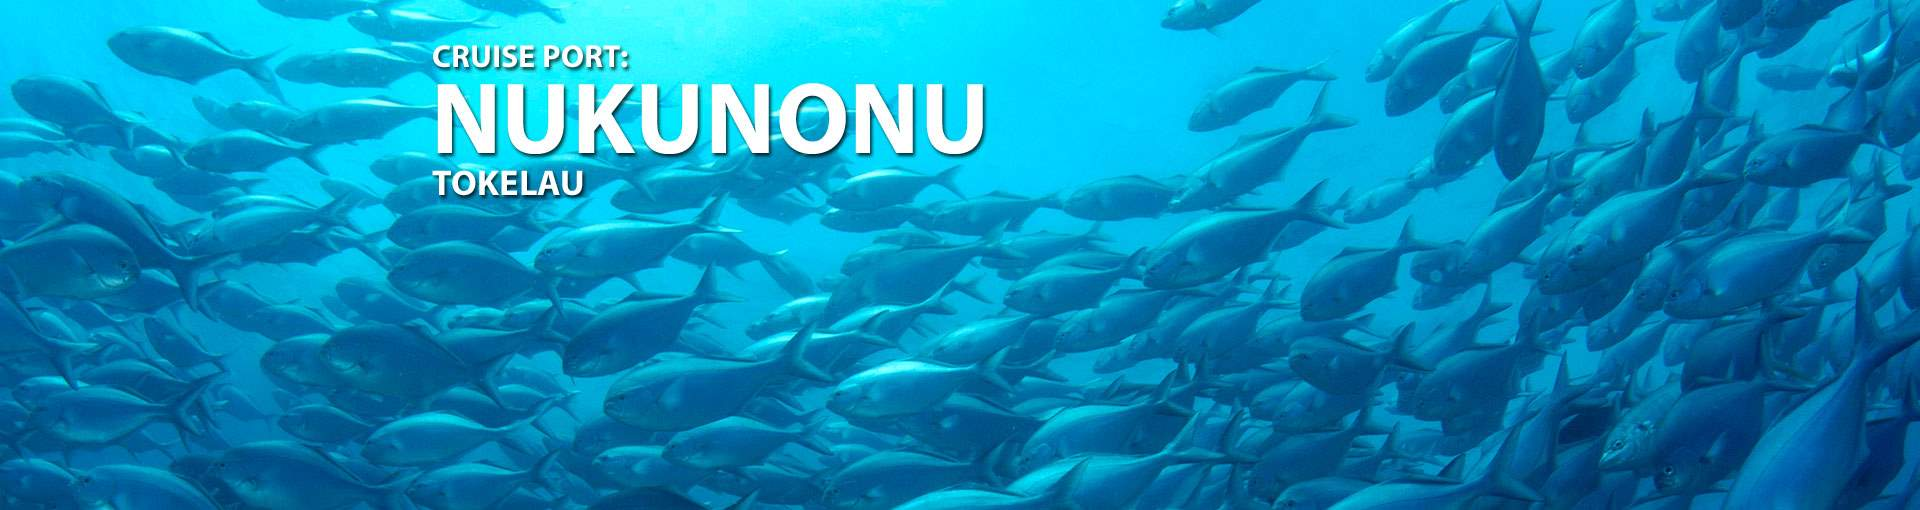 Cruises to Nukunonu, Tokelau